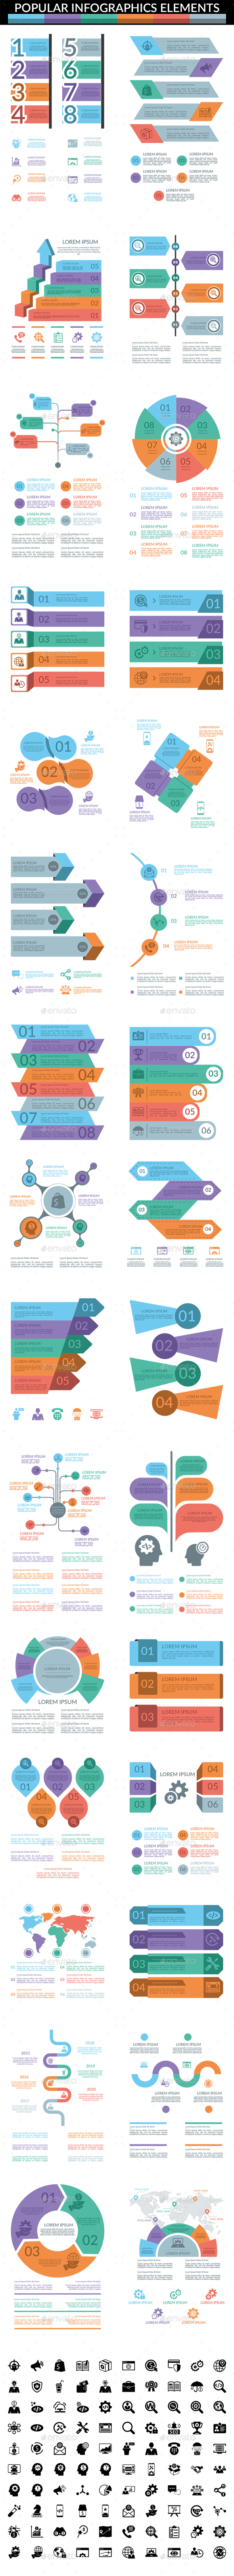 GraphicRiver 30 Popular Infographic Elements 20630544